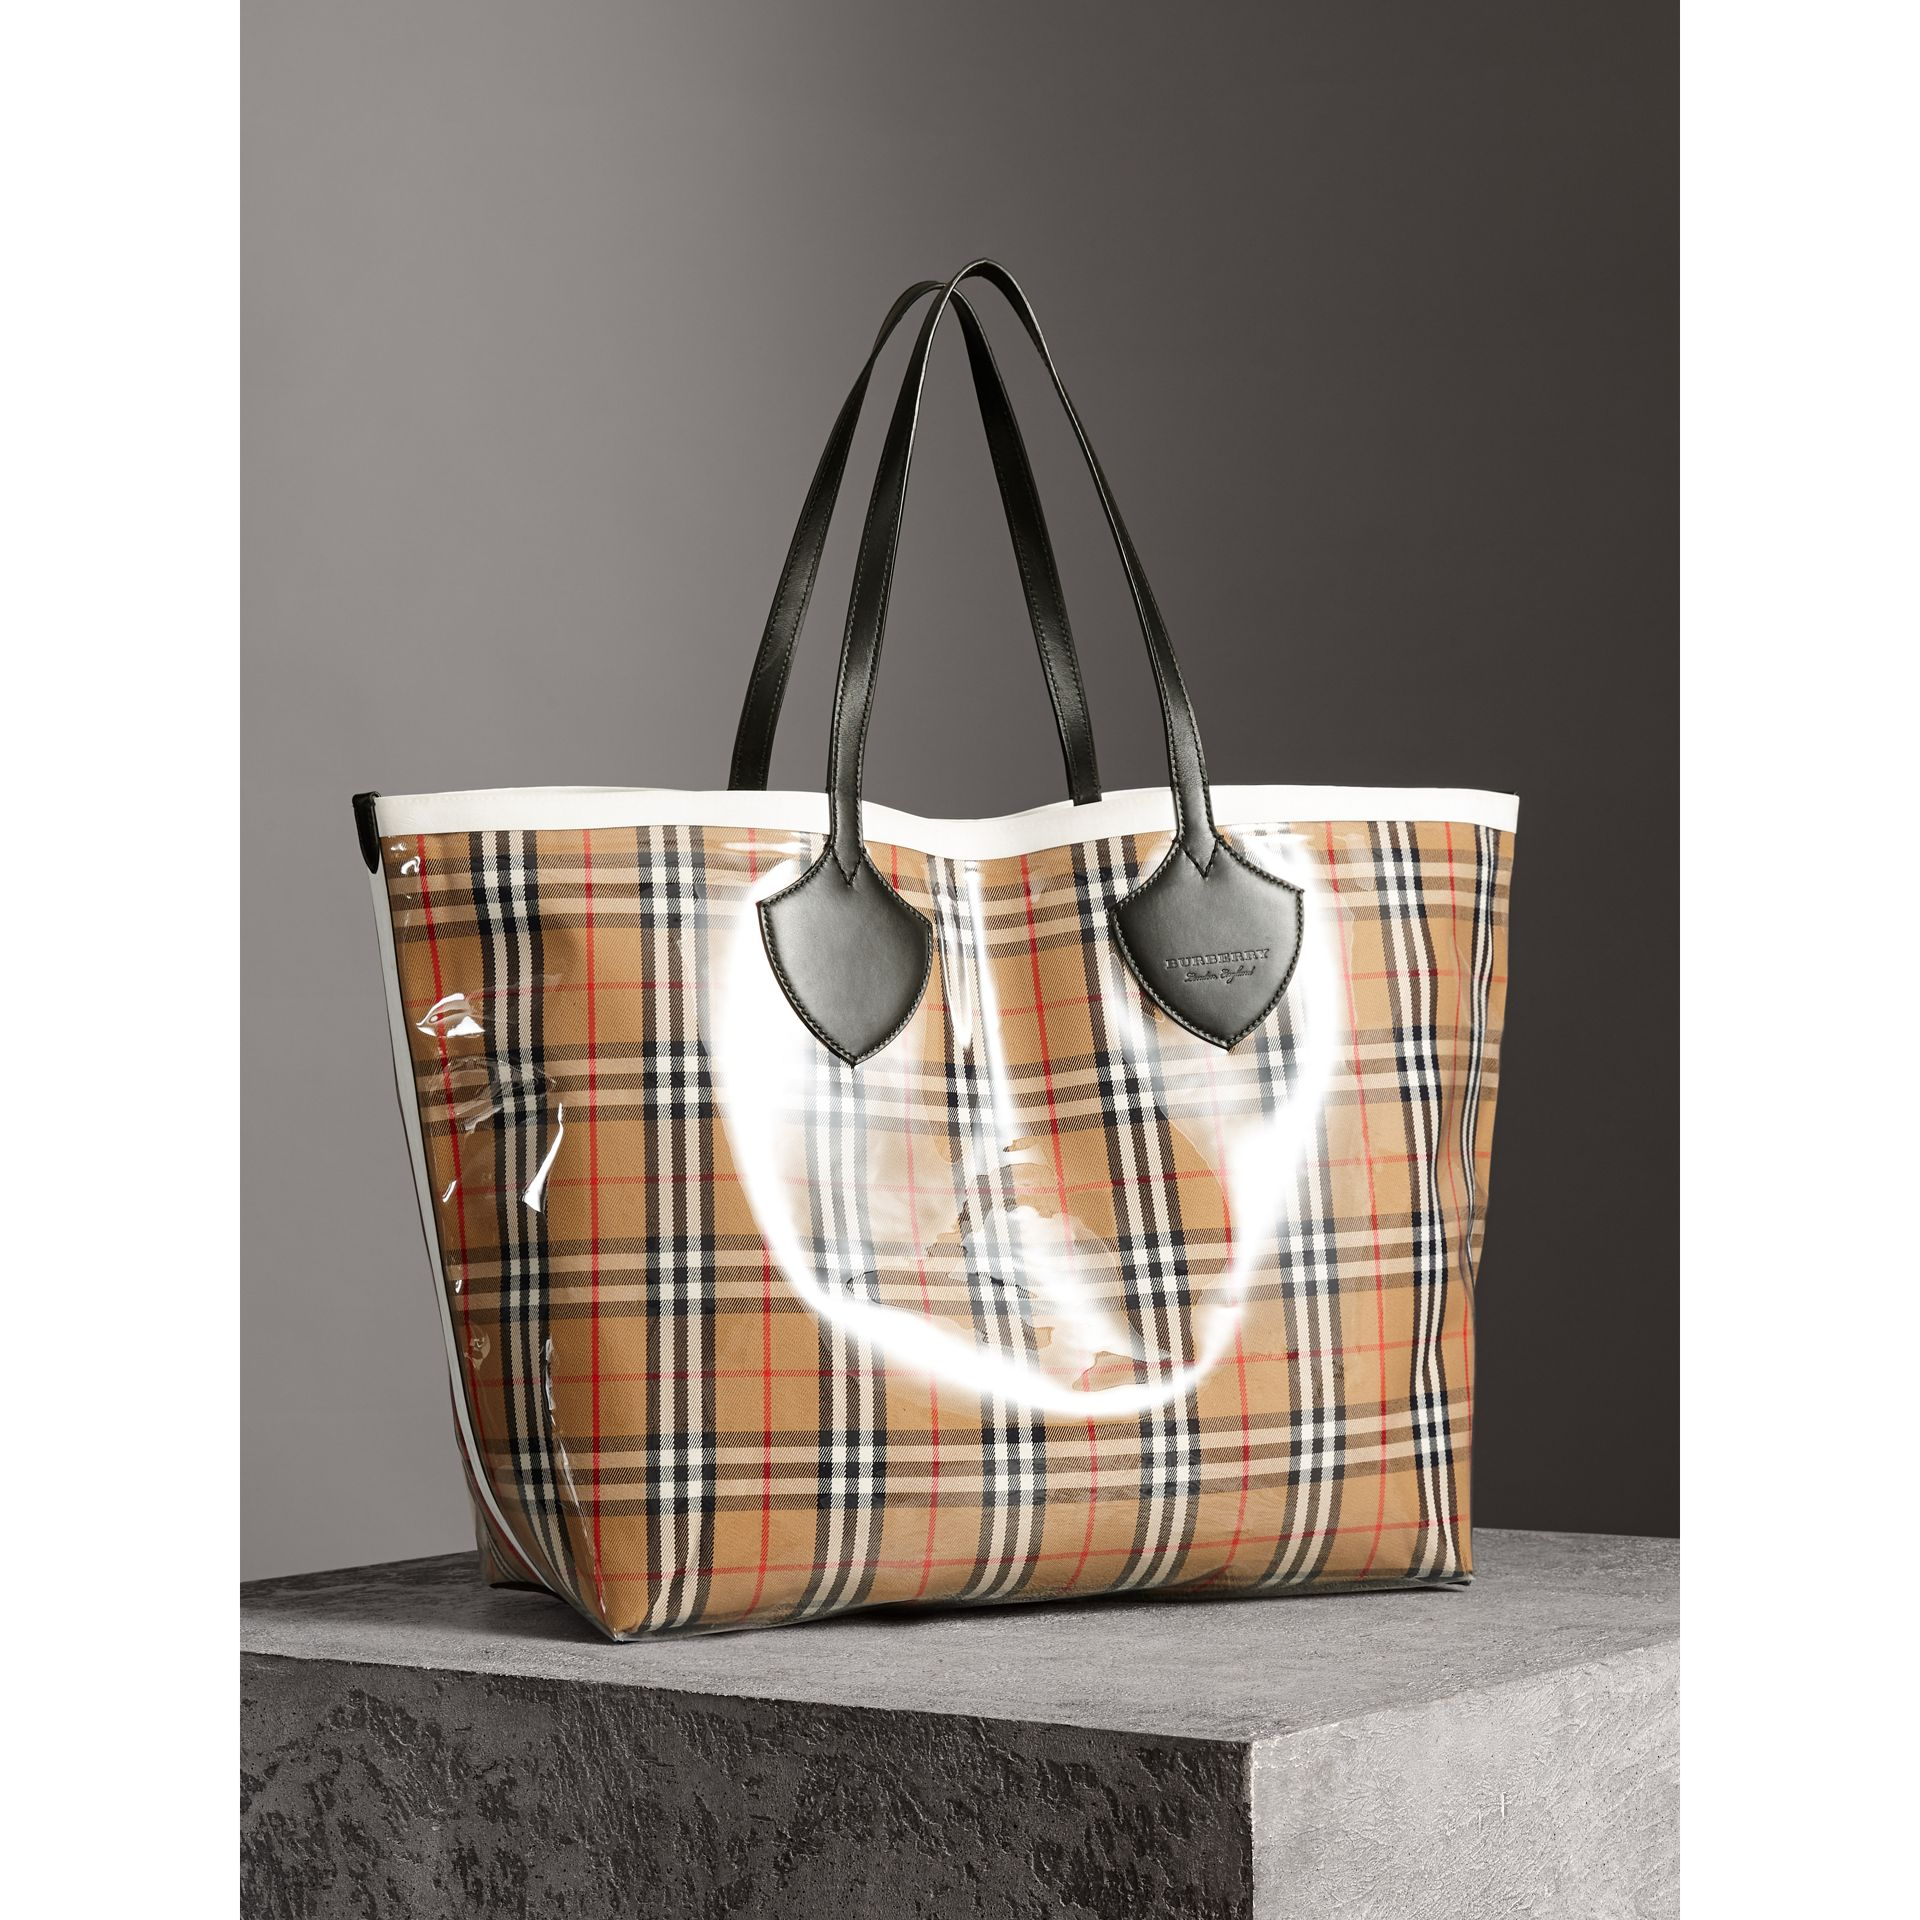 Sac tote The Giant en plastique et coton à motif Vintage check (Jaune Antique/blanc) - Femme | Burberry - photo de la galerie 7